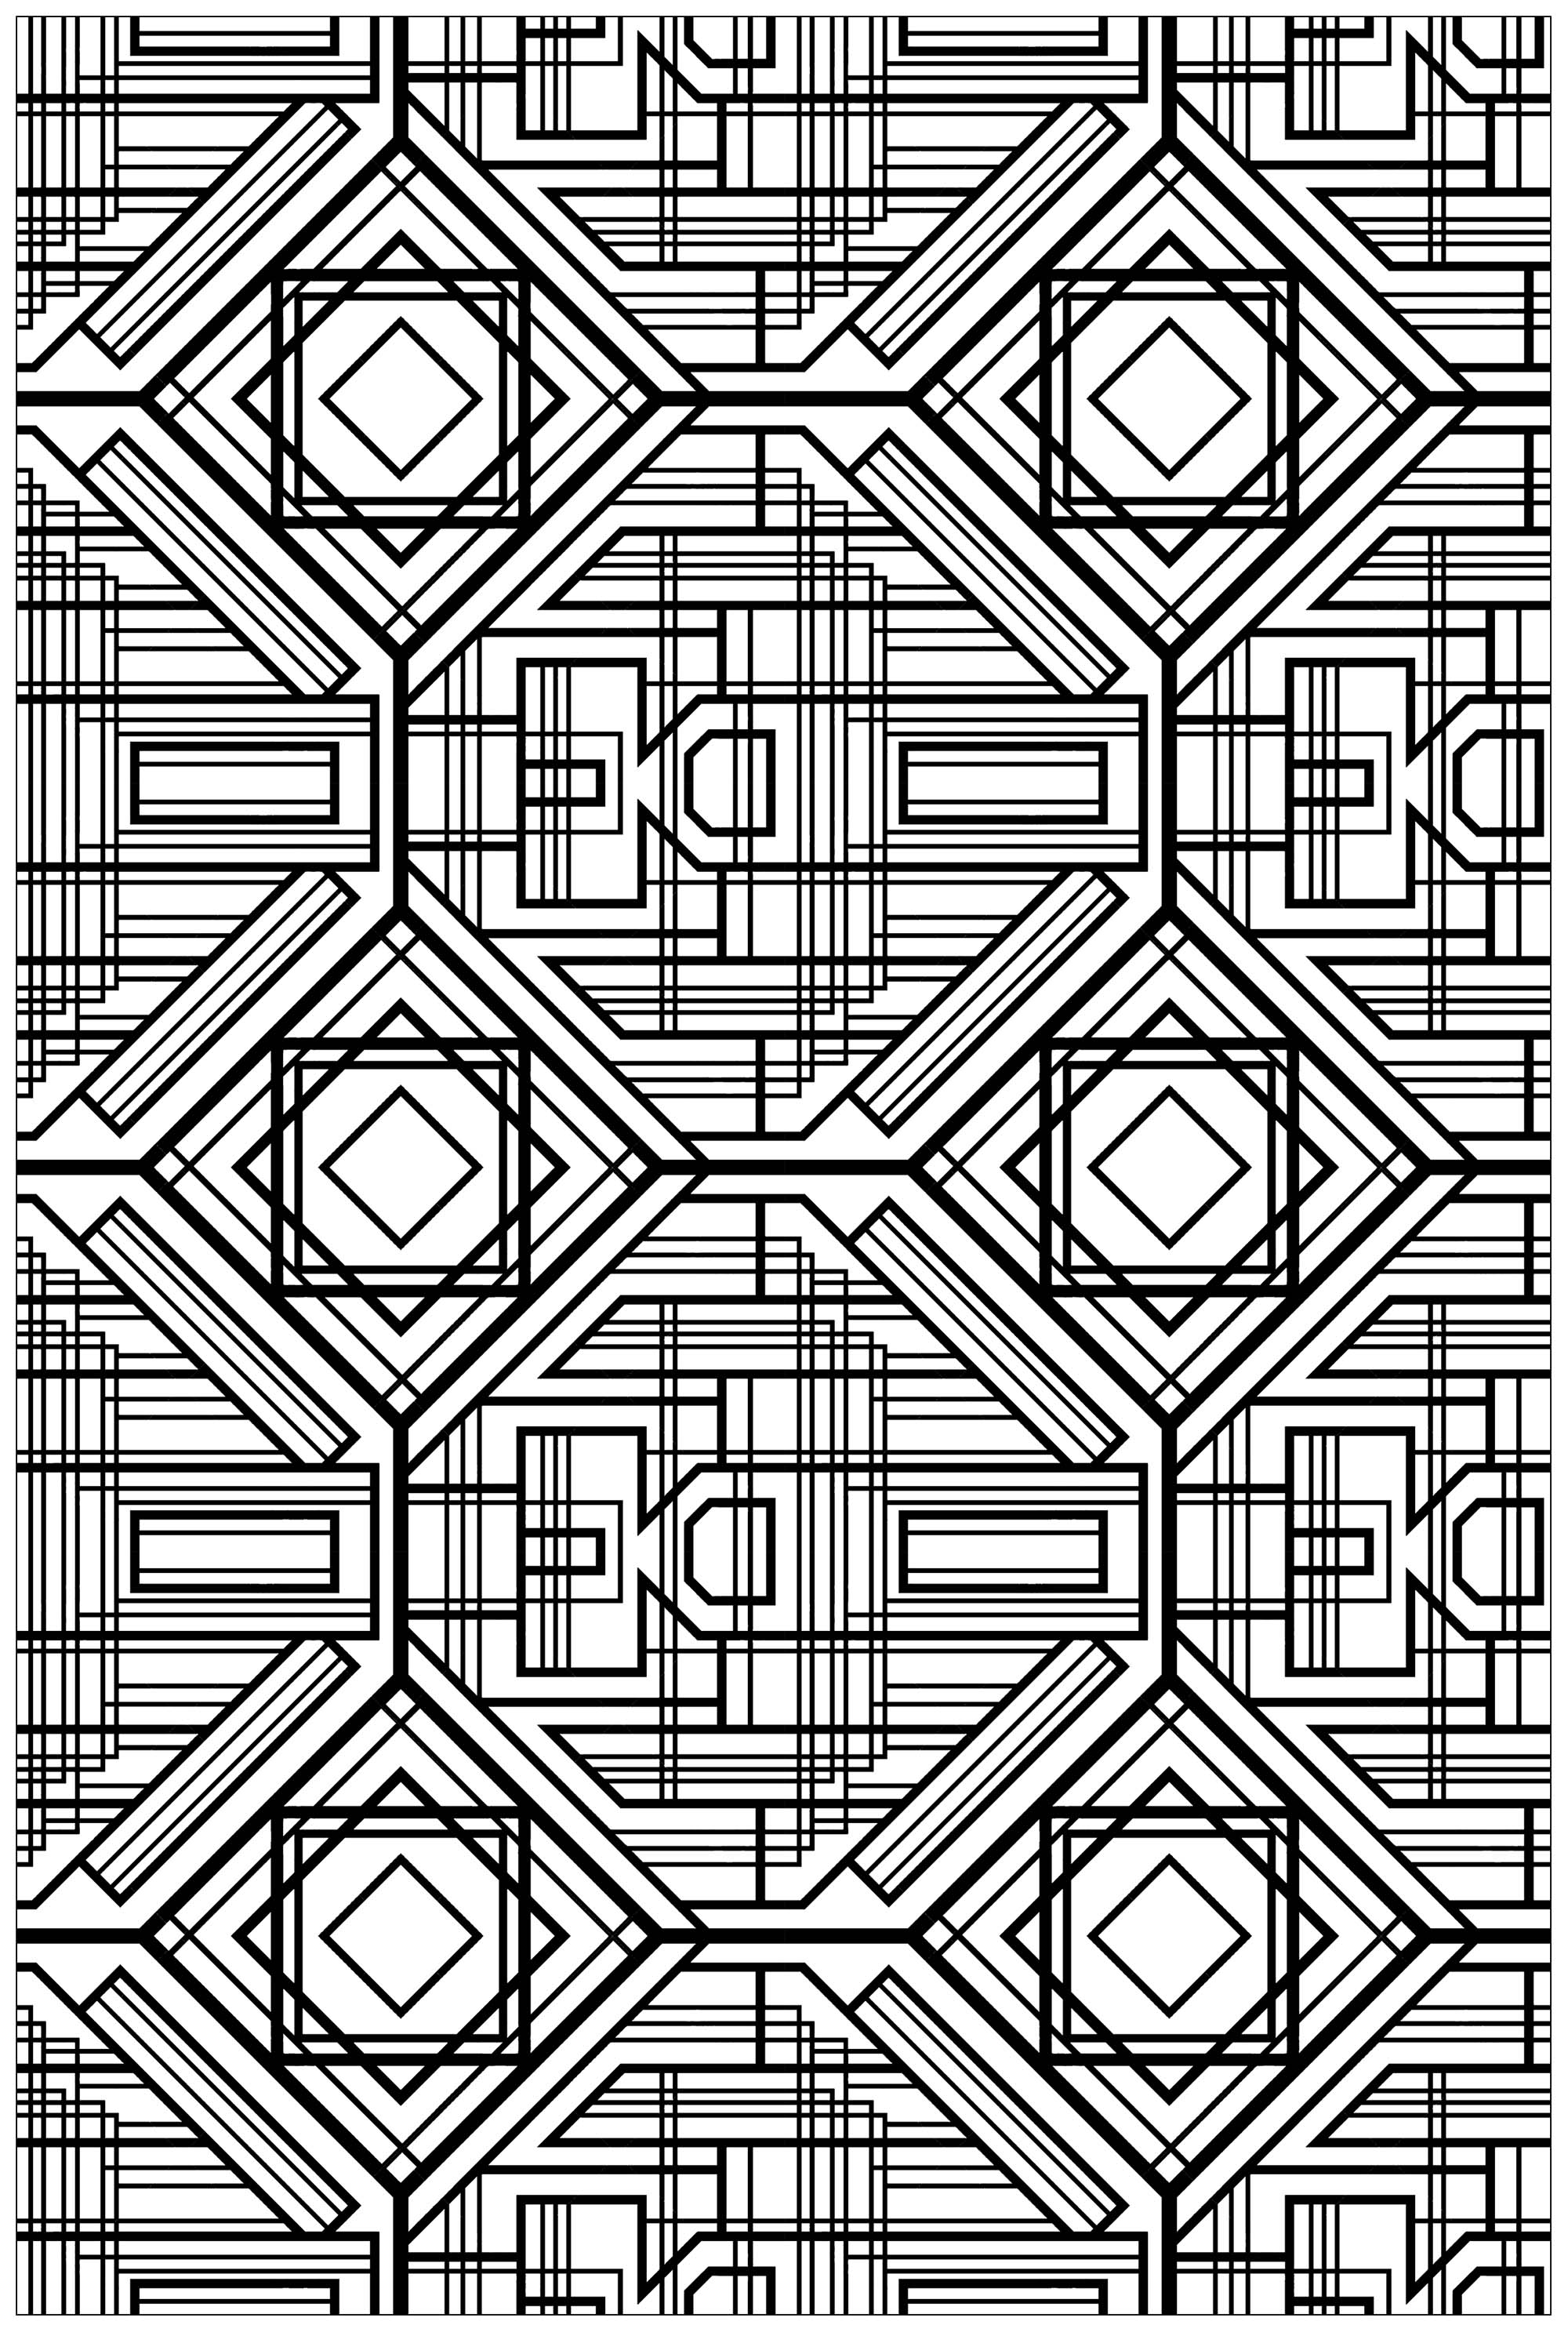 Art deco complex pattern - Art Deco Adult Coloring Pages